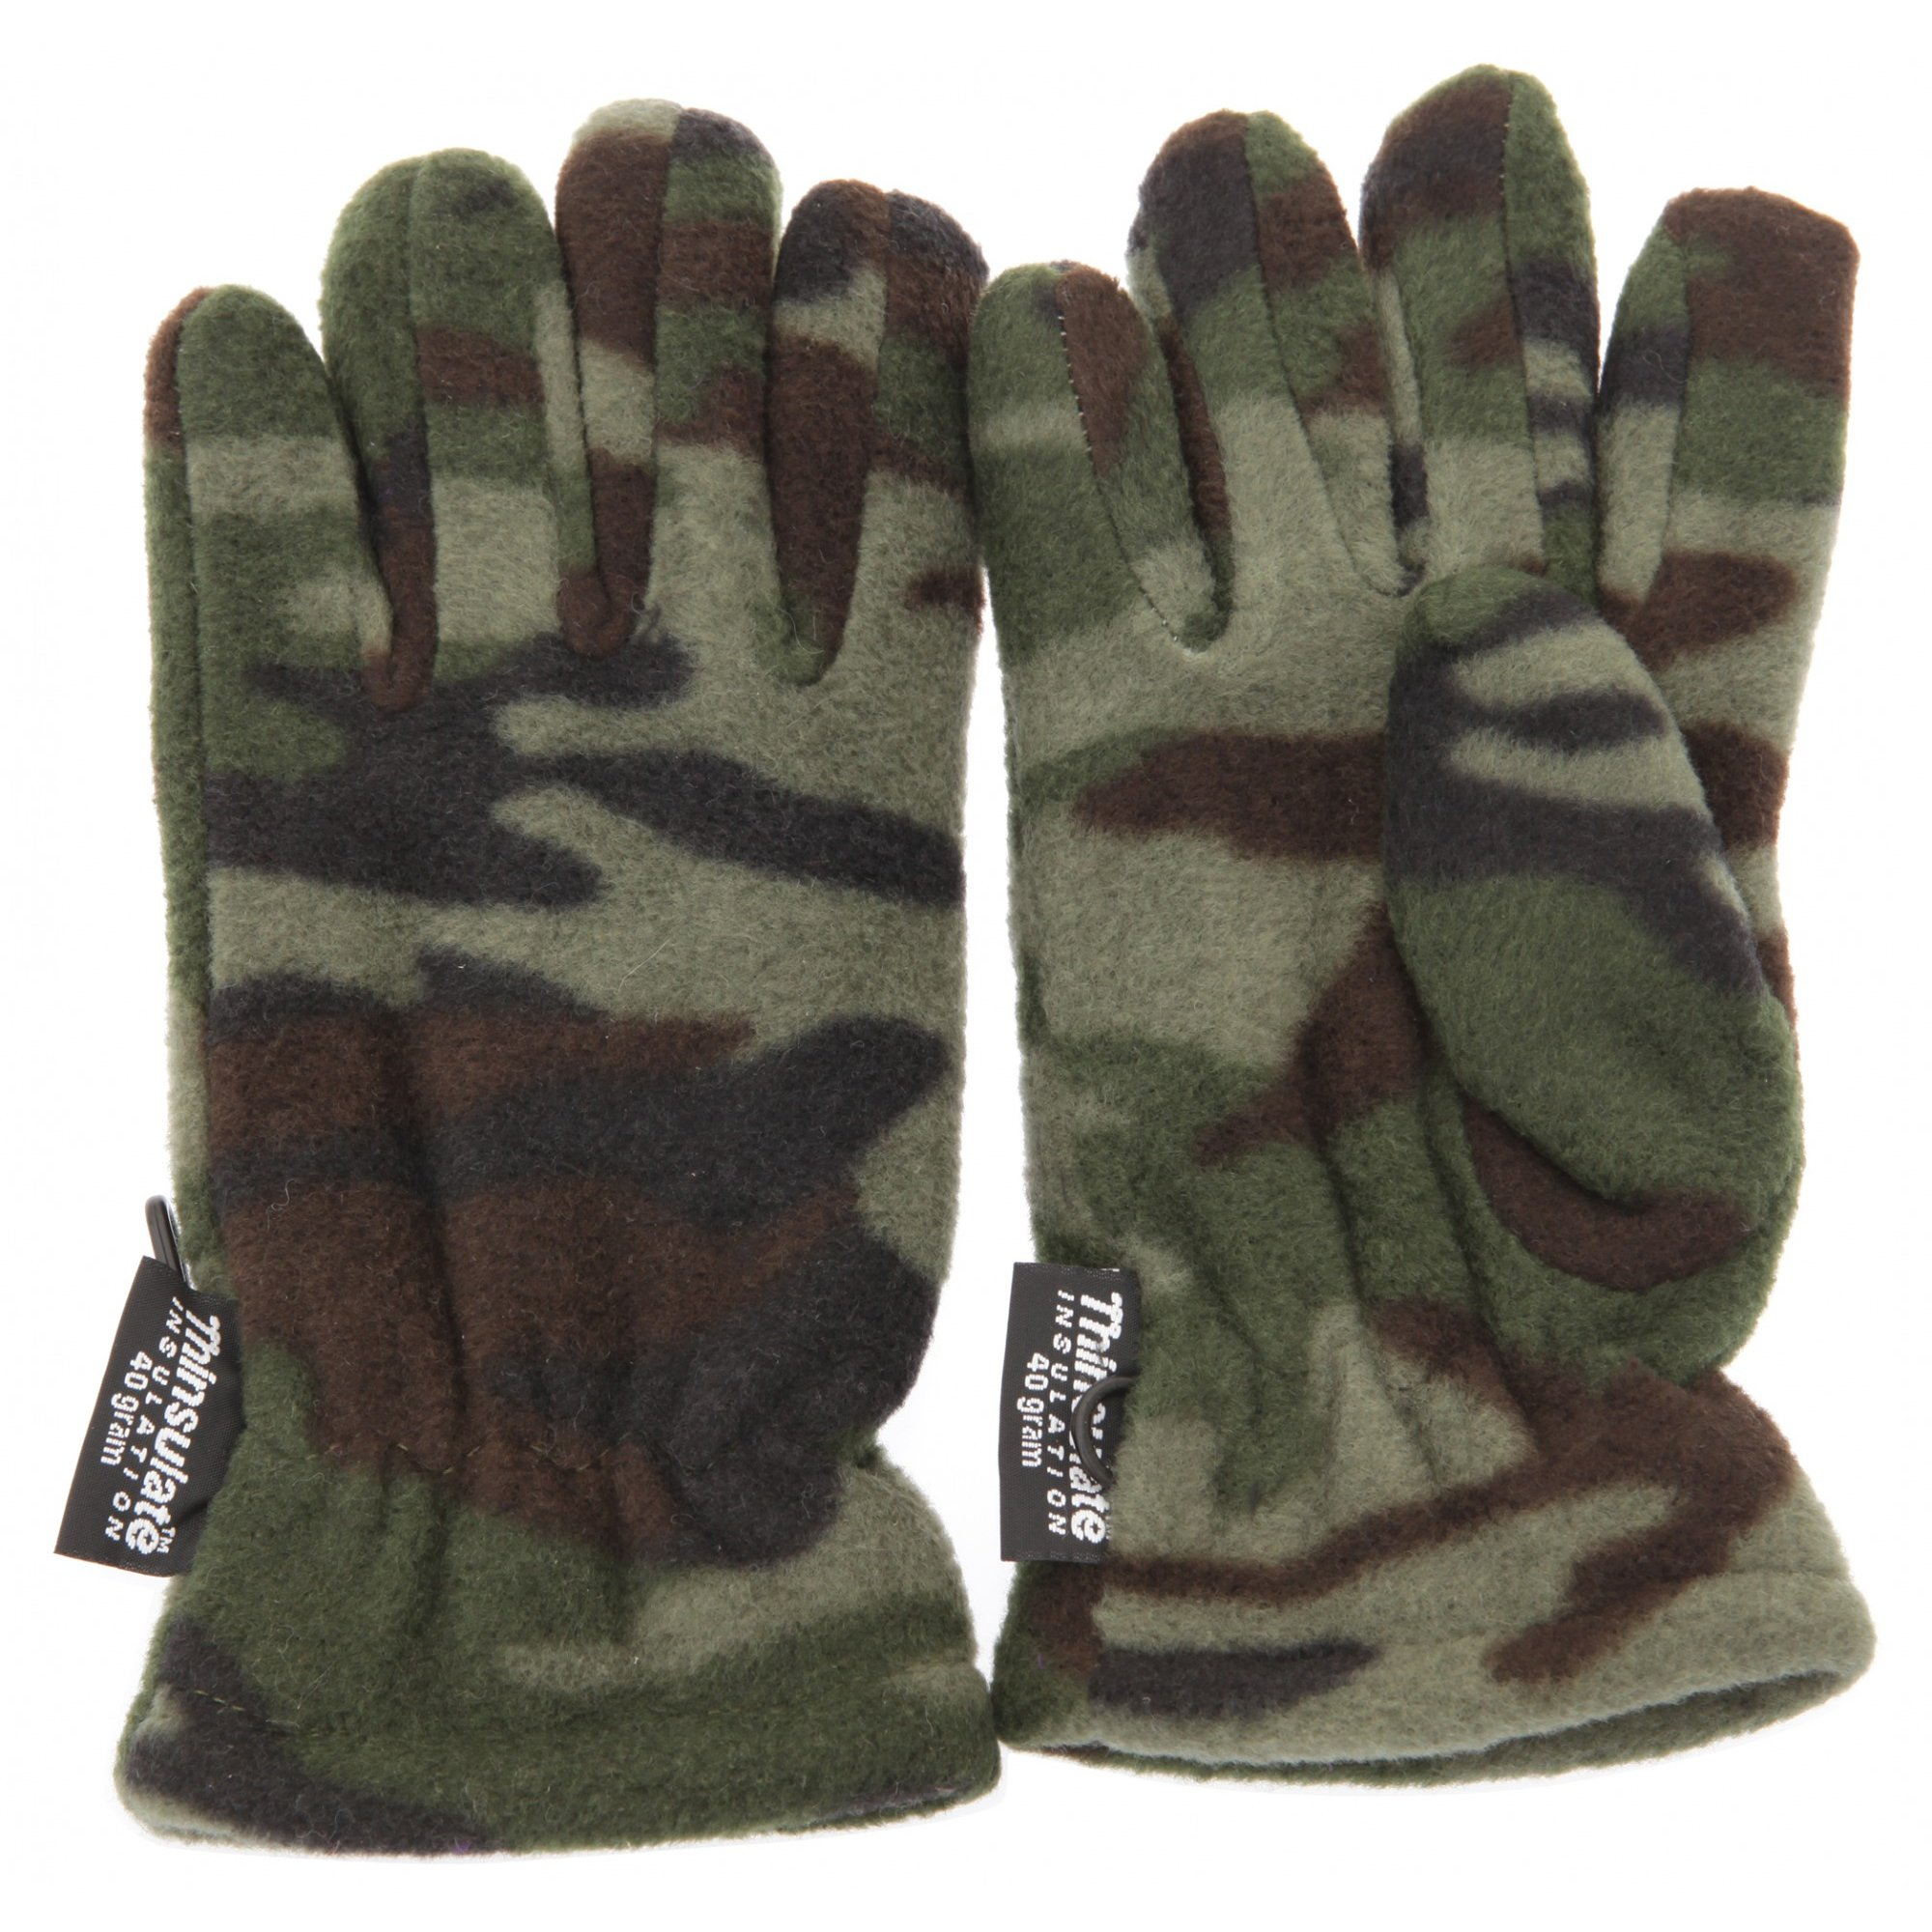 Childrens Boys Camouflage Thinsulate Thermal Winter Gloves (3M 40g) (3-6 Years) (Green Camouflage)